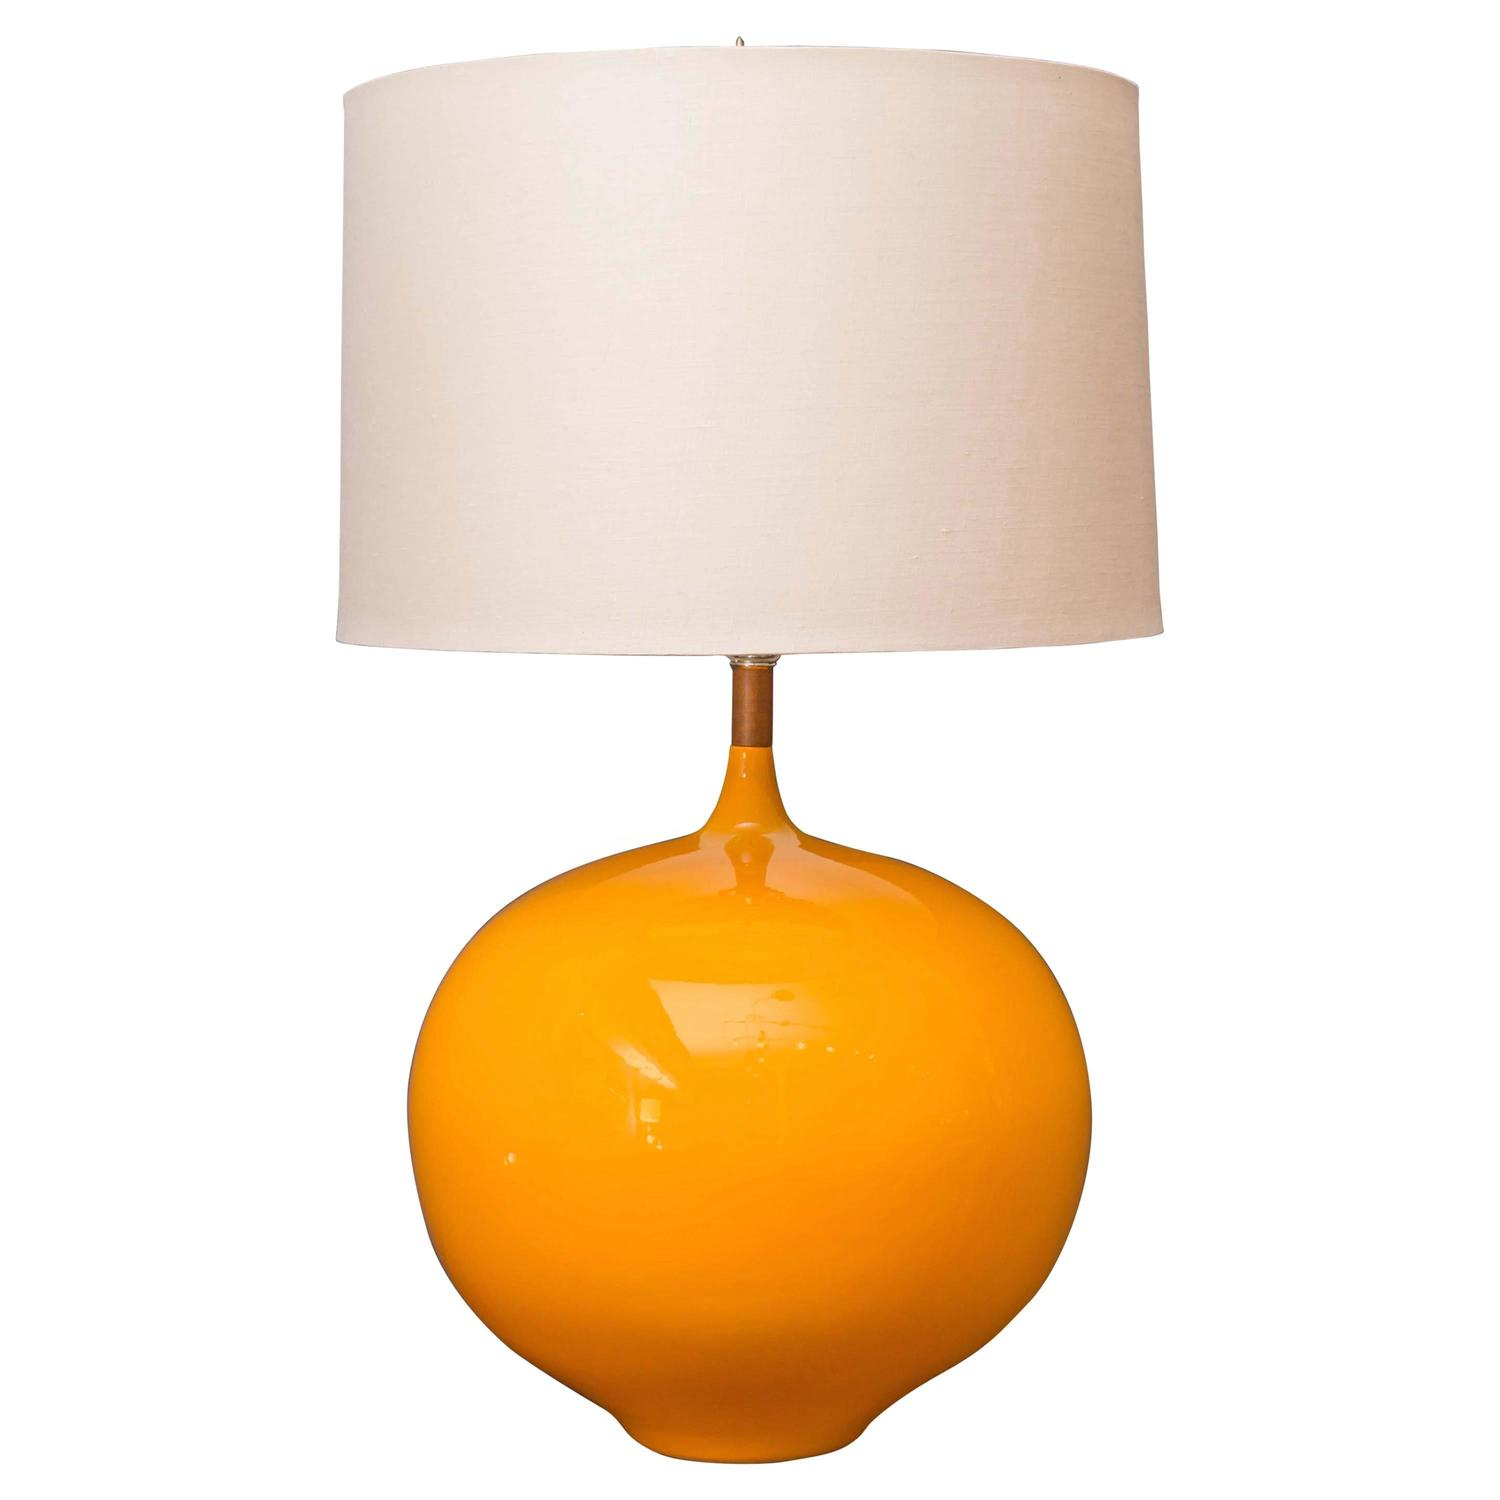 mid century modern yellow lamp at 1stdibs. Black Bedroom Furniture Sets. Home Design Ideas